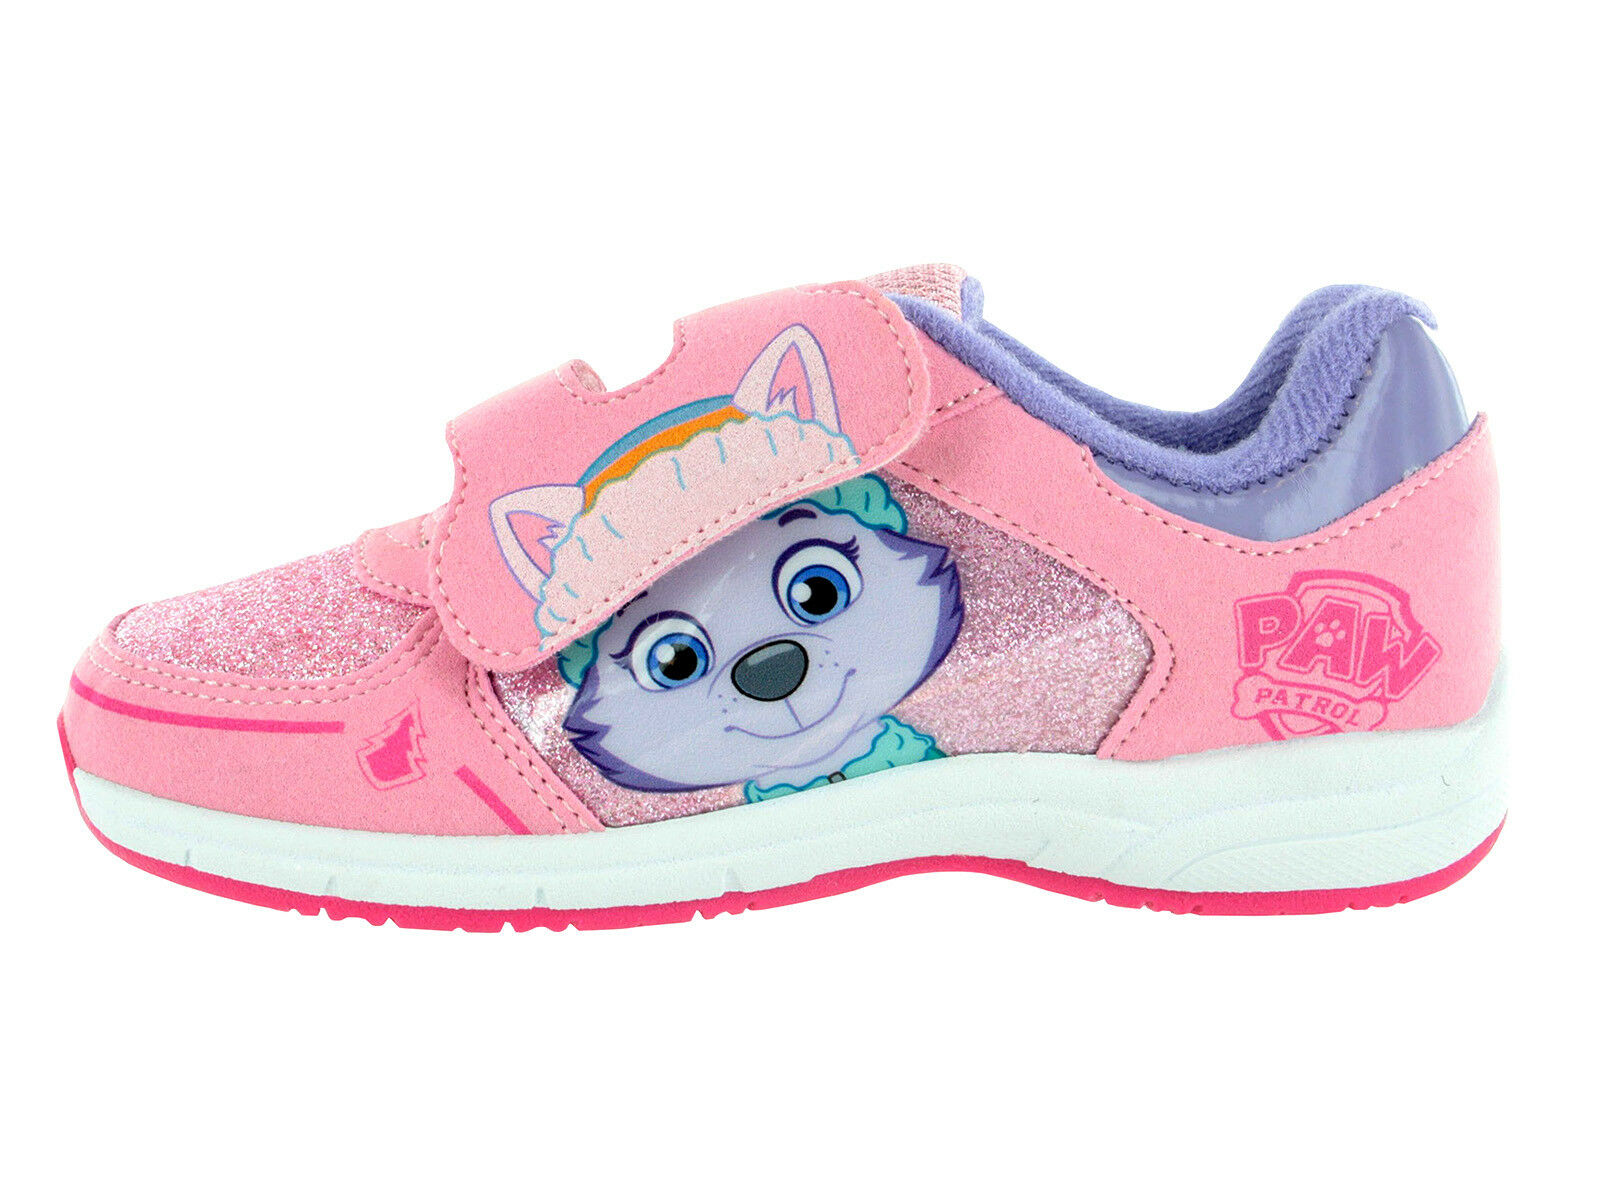 Girls Paw Patrol Pink Wipe Clean Casual Trainers Sports Shoes Sizes 8-13 Child